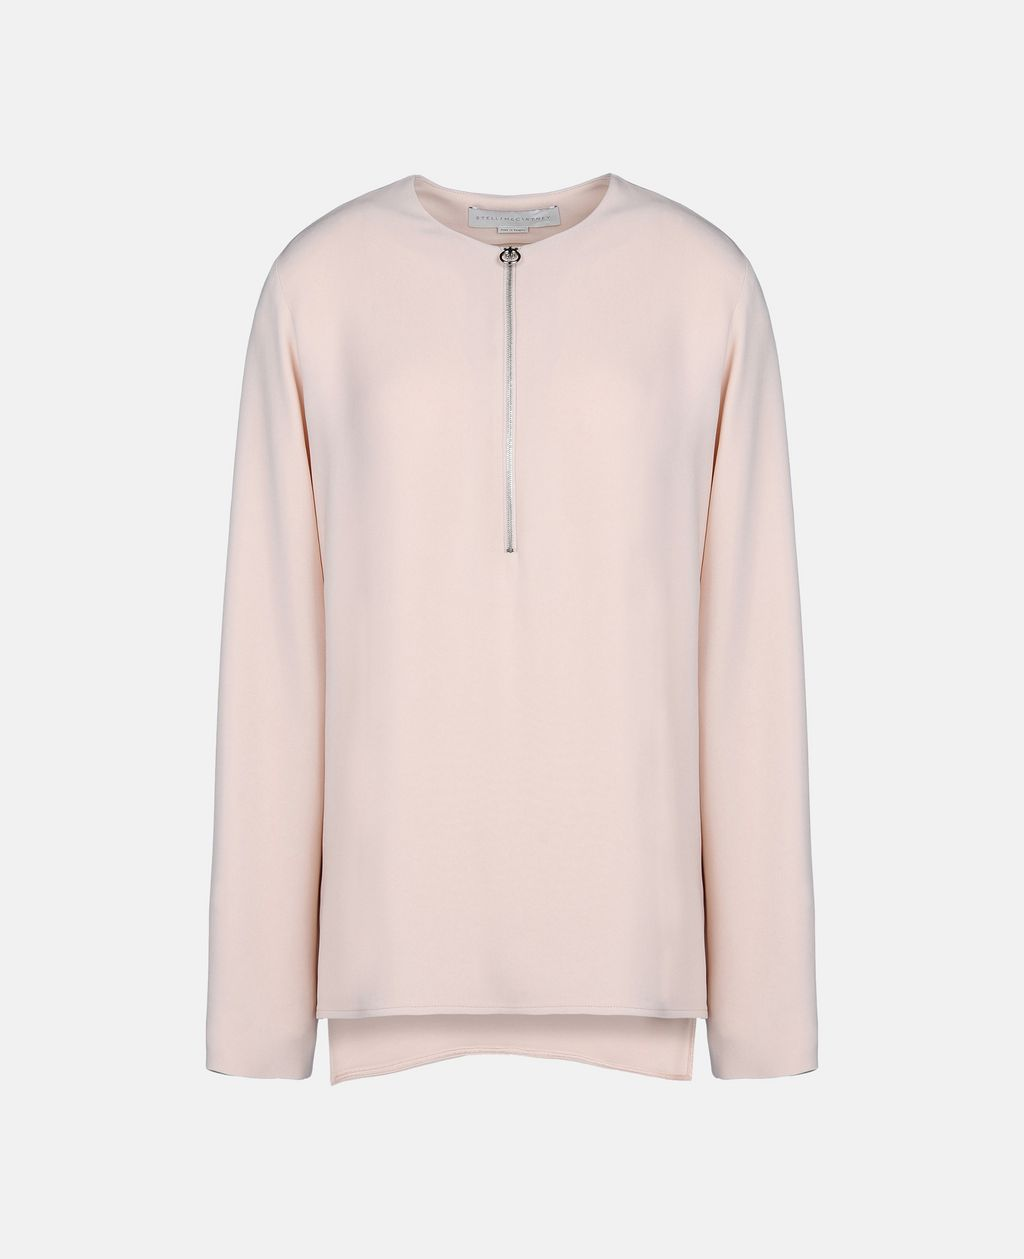 Rose Arlesa Top - STELLA MCCARTNEY